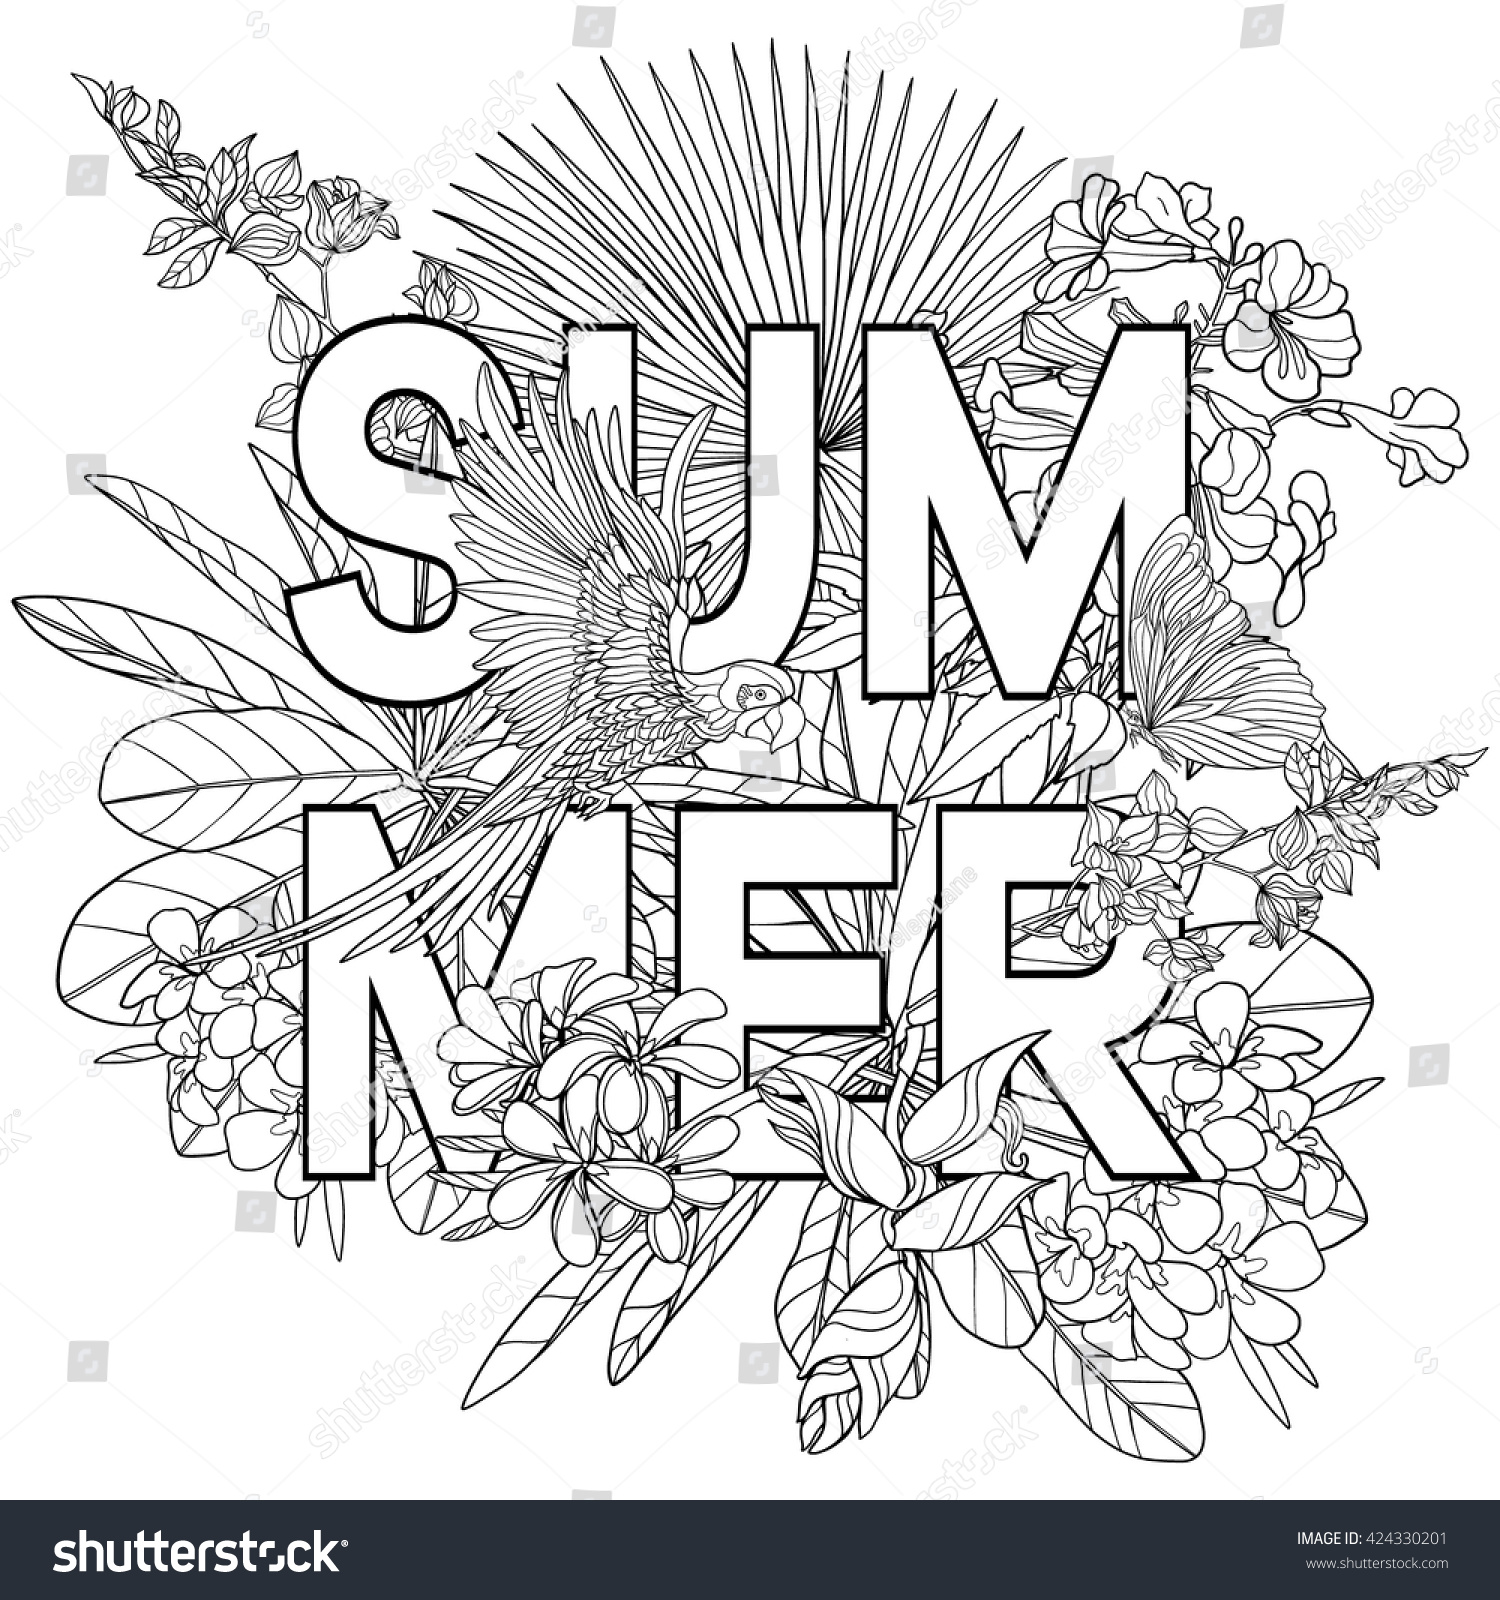 Adult Coloring Book Coloring Page Word Lager Vektor